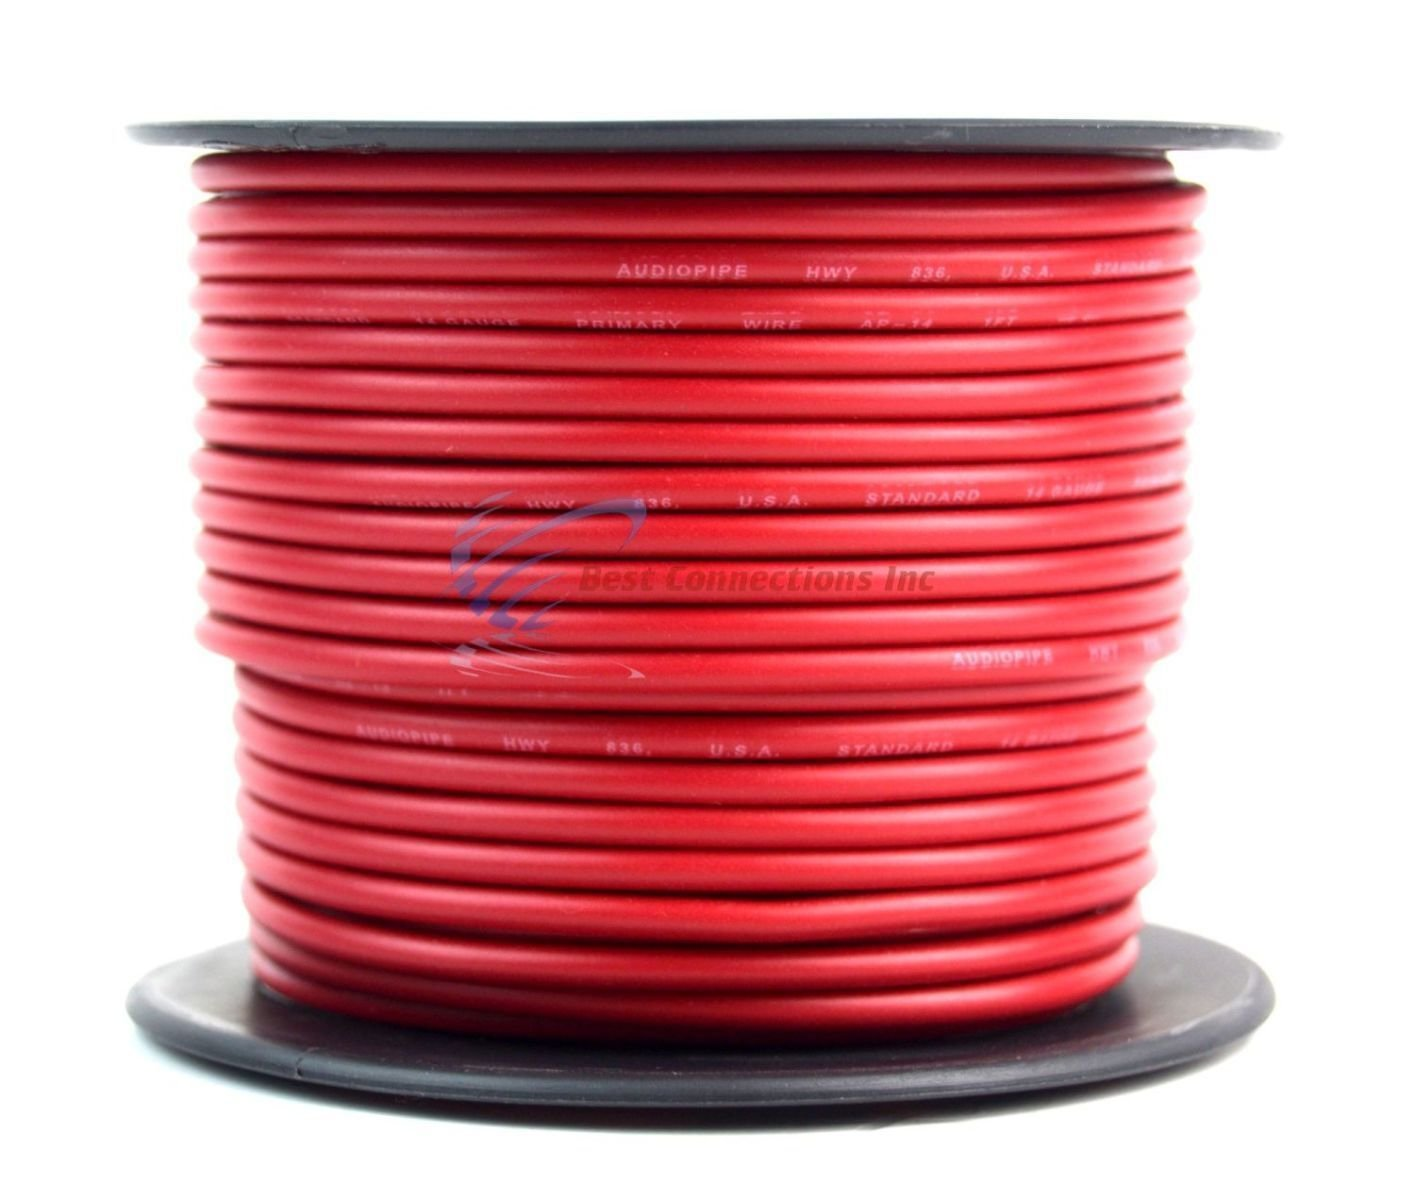 Best Connections LYSB01ANZRXDI-ELECTRNCS 14 GAUGE WIRE RED /& BLACK POWER GROUND 100 FT EACH PRIMARY STRANDED COPPER CLAD Audiopipe